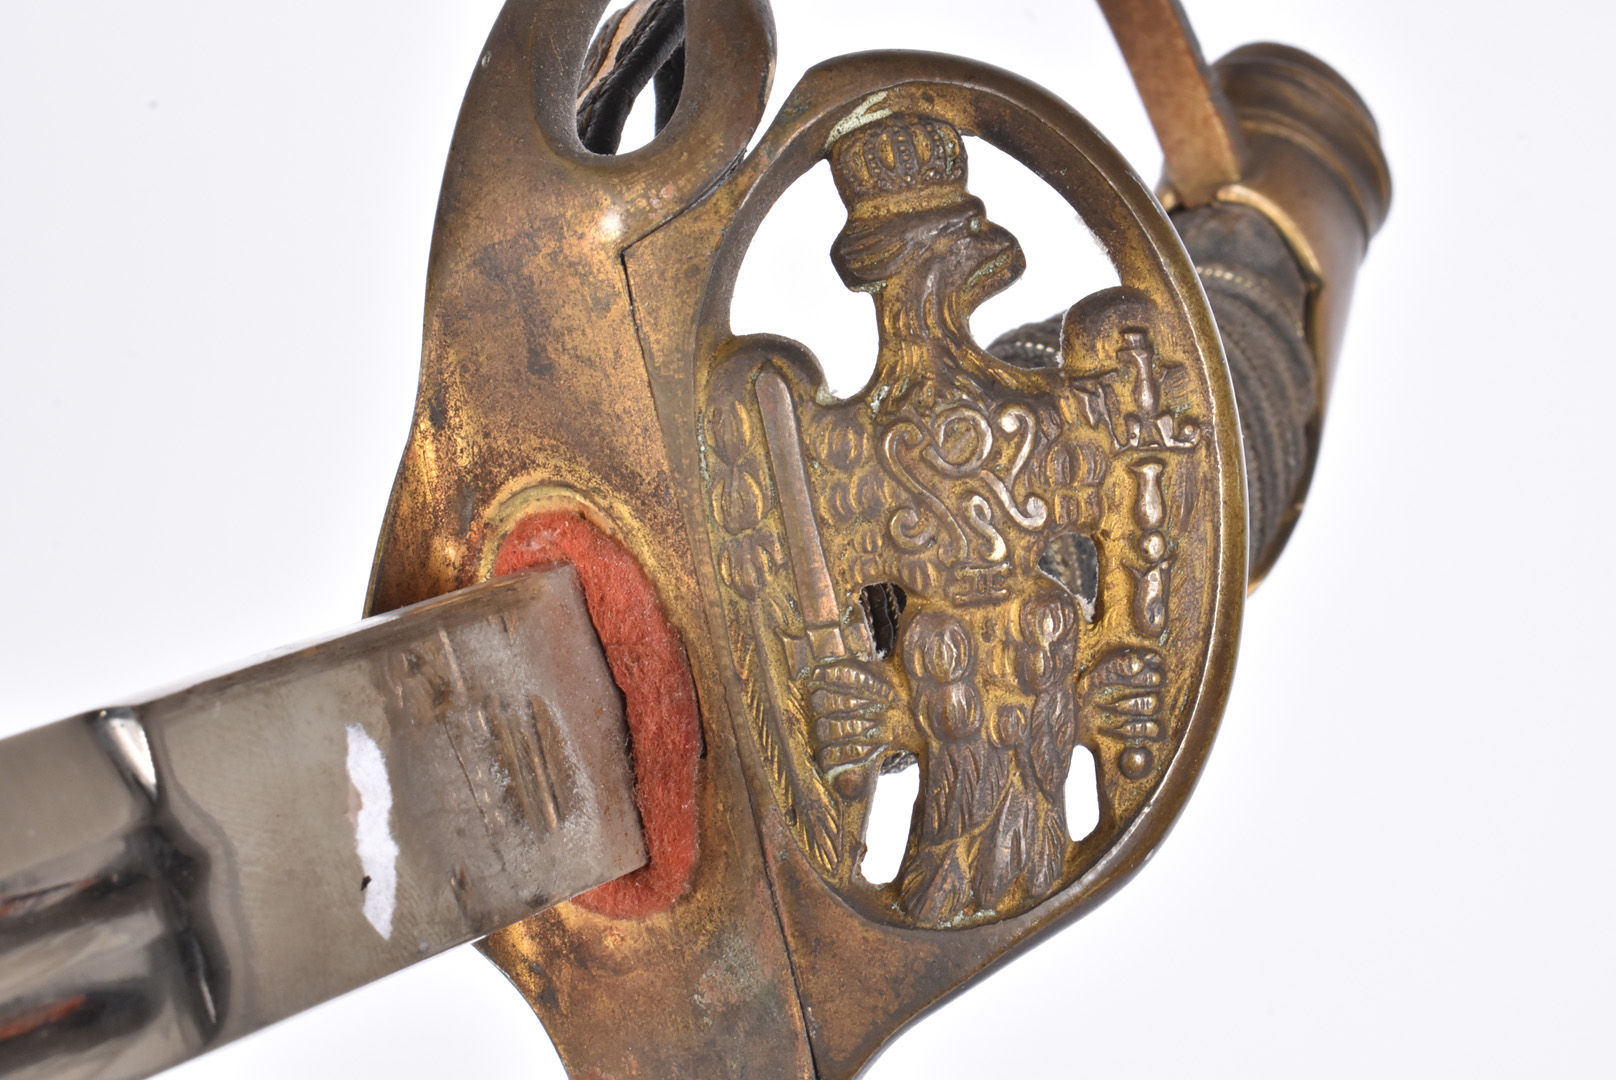 A Prussian model 1889 Infantry Officer's Sword, by P O & Co, having applied Royal cipher to the - Image 3 of 7